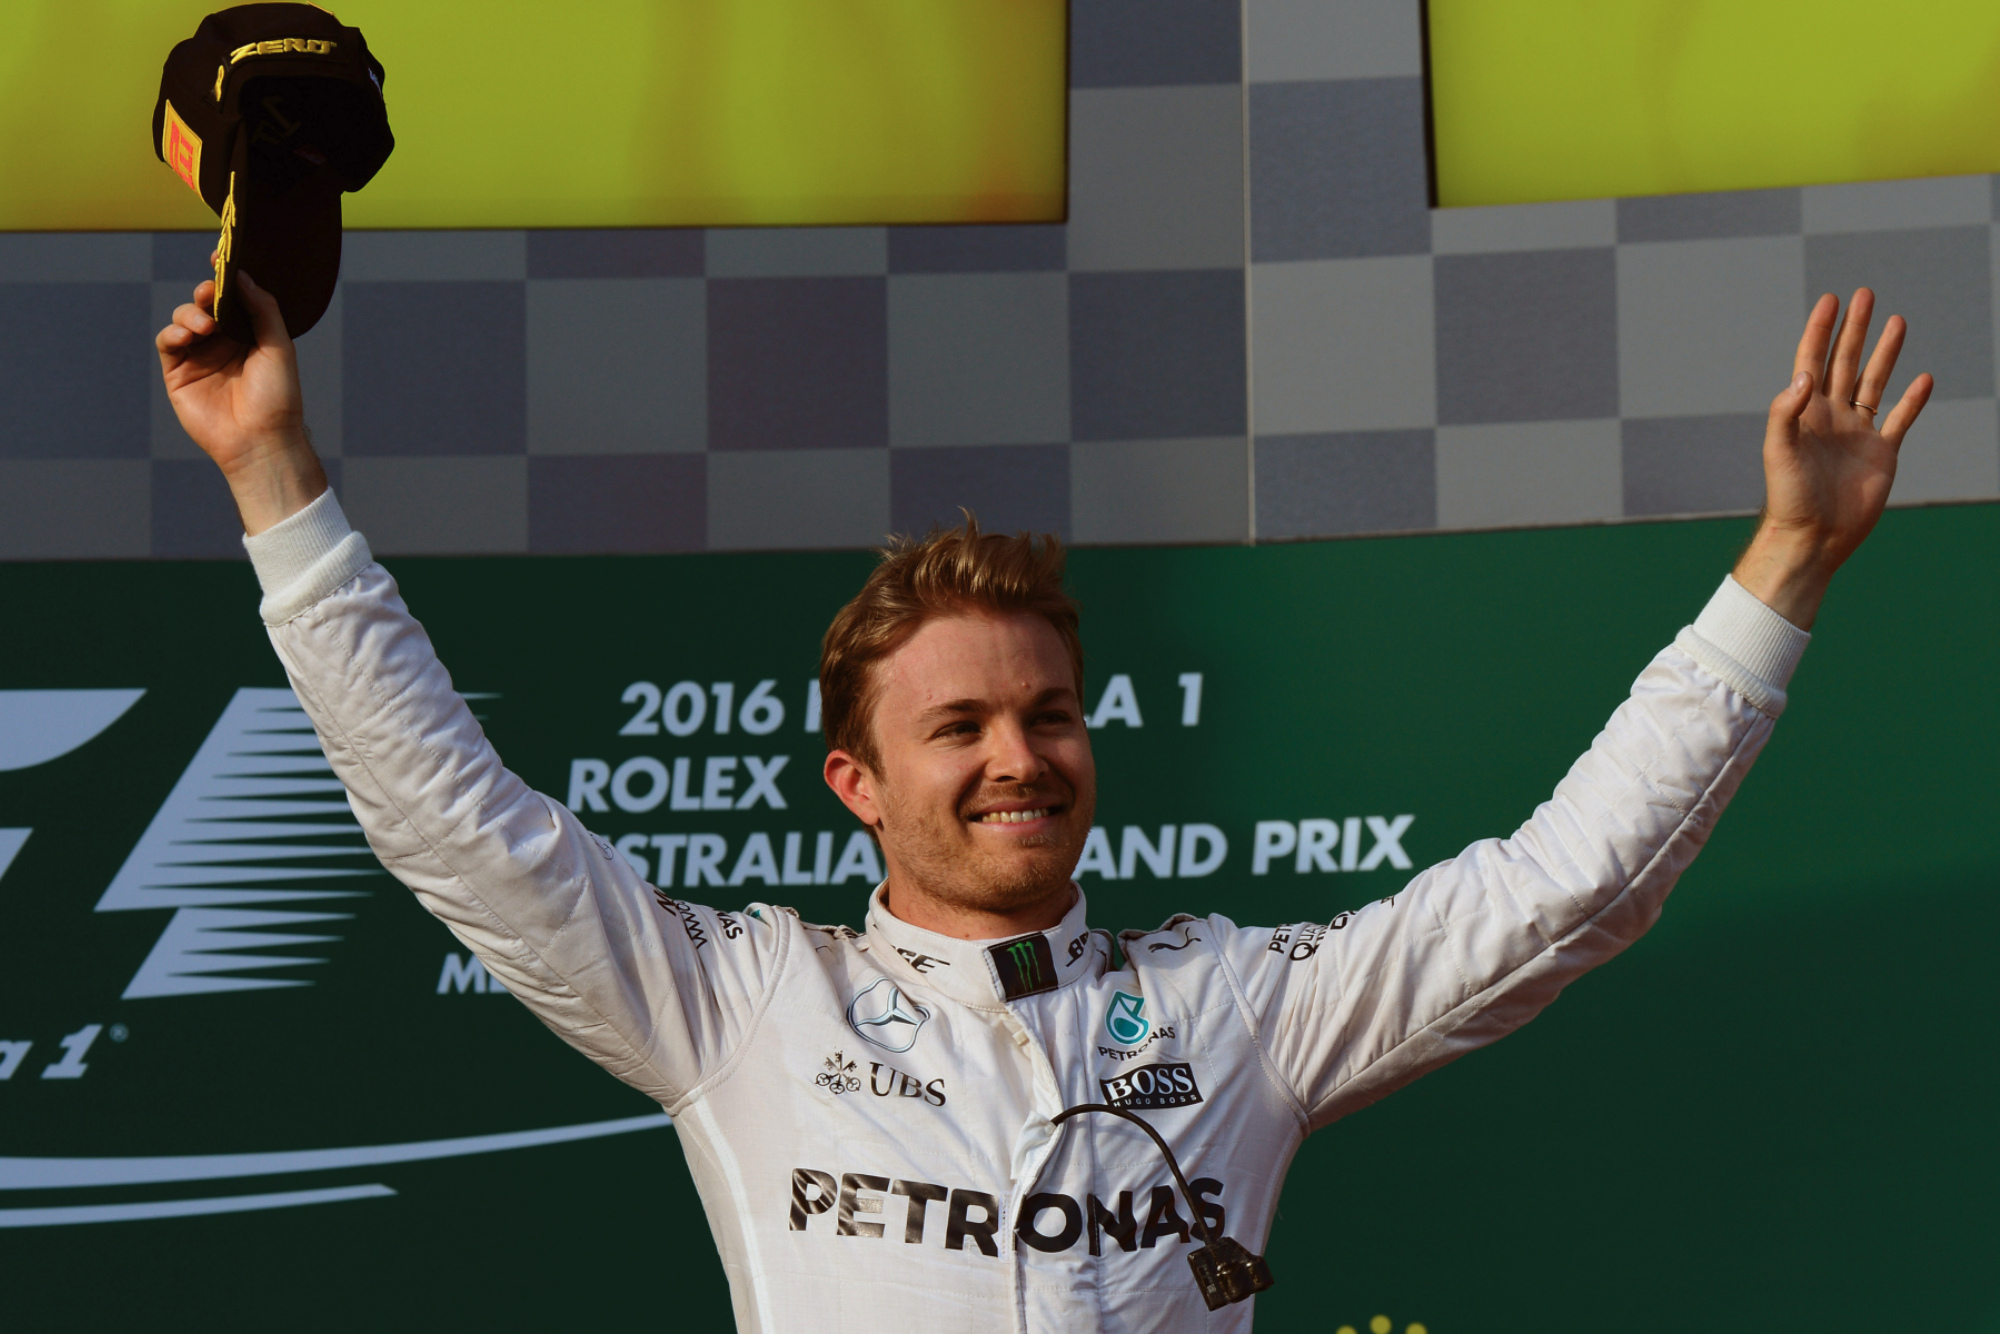 Nico Rosberg celebrates his win in Melbourne